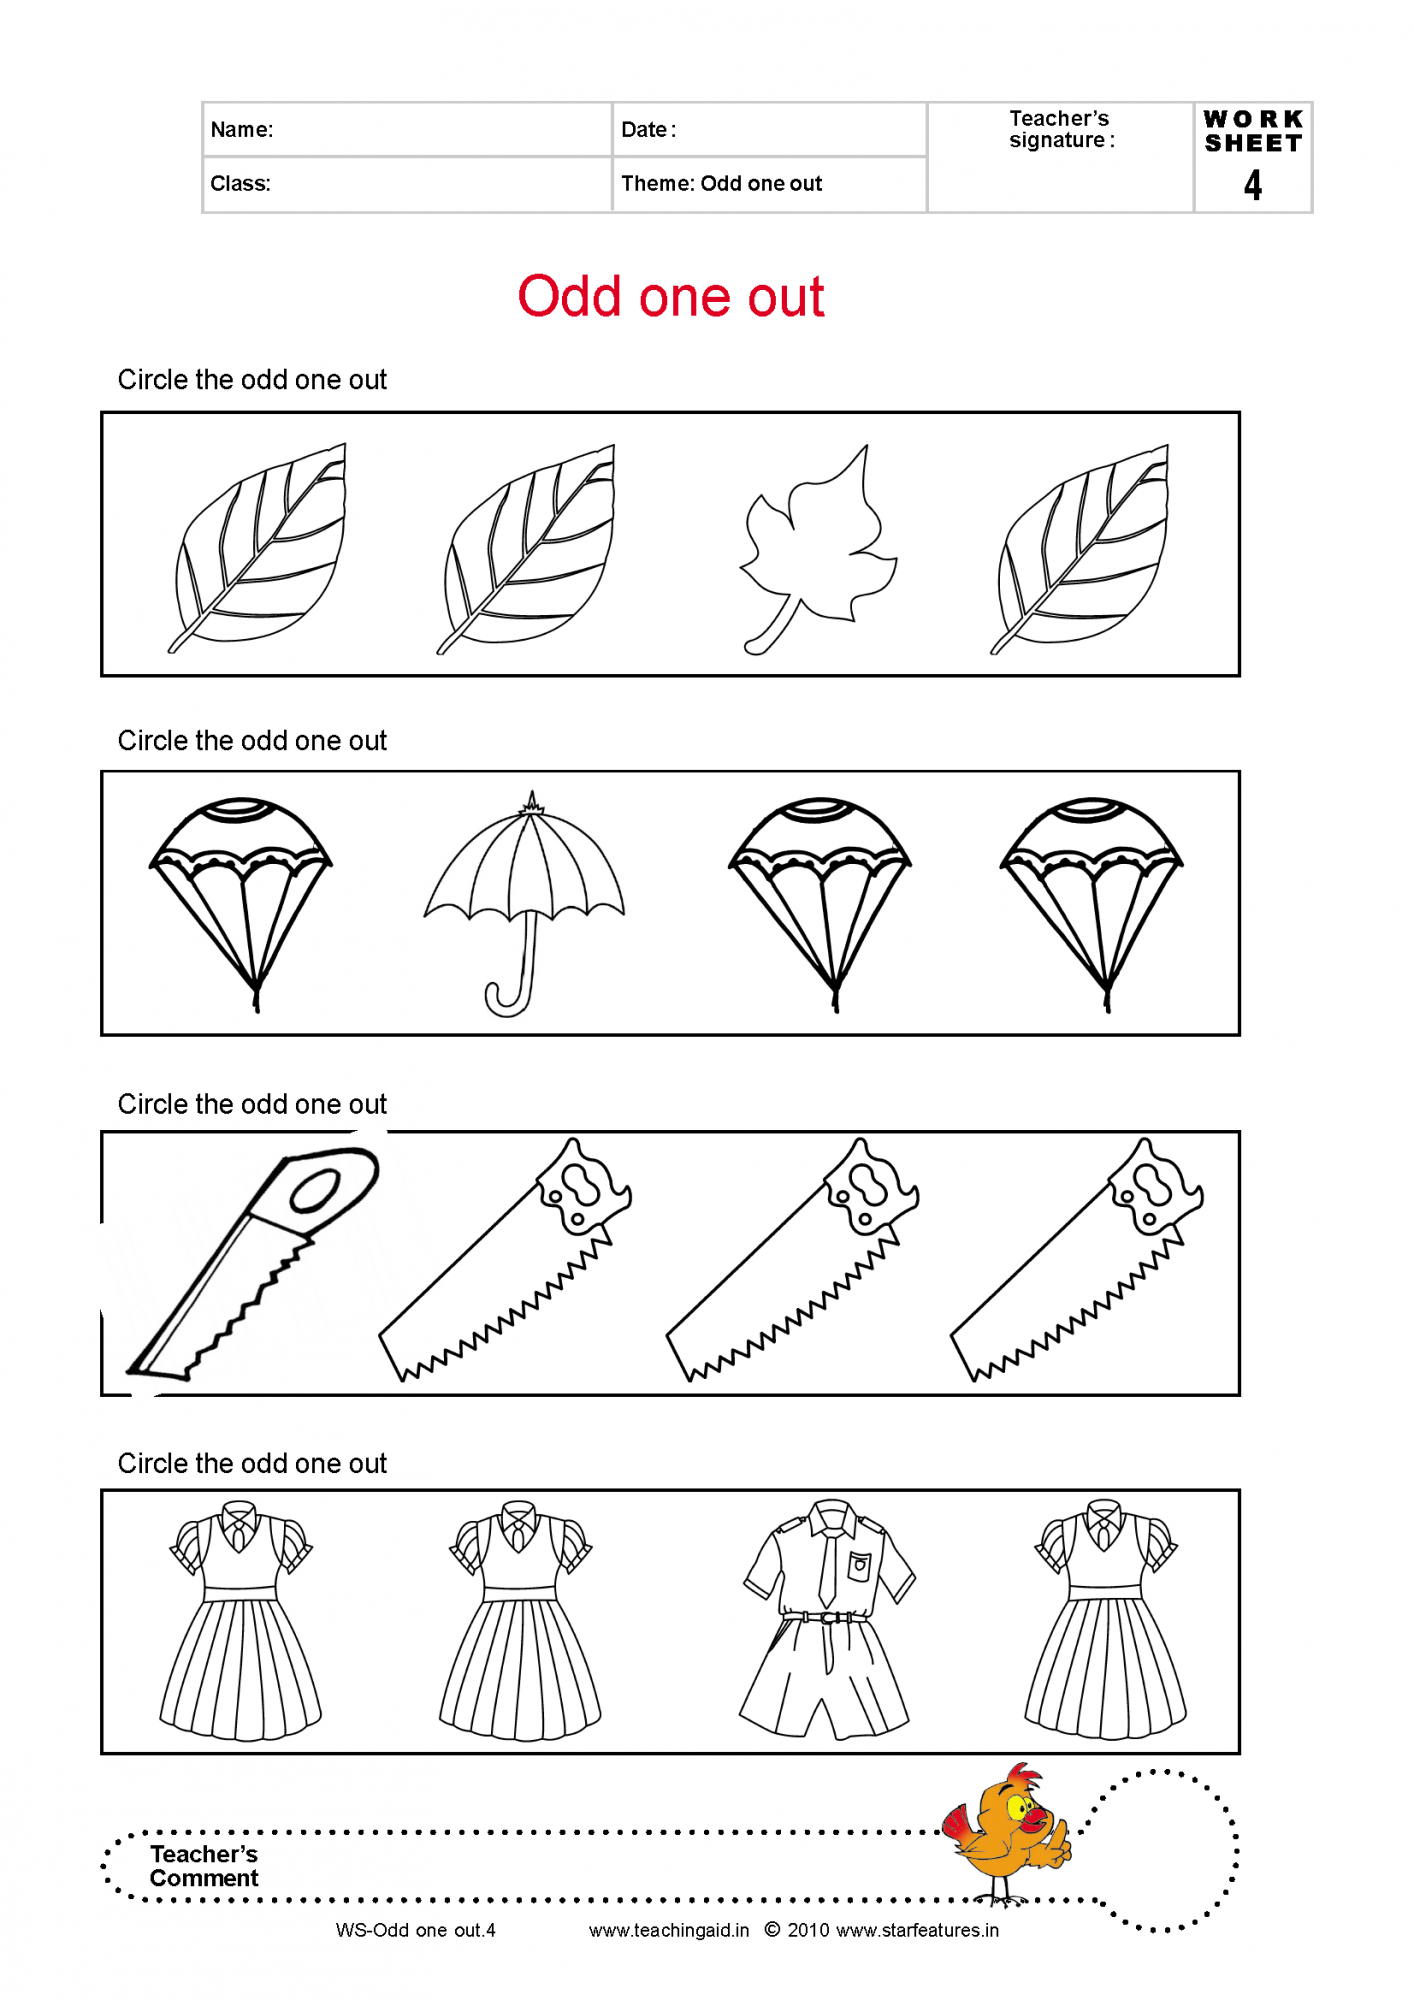 odd one out printable free basic concepts worksheets printable out odd one